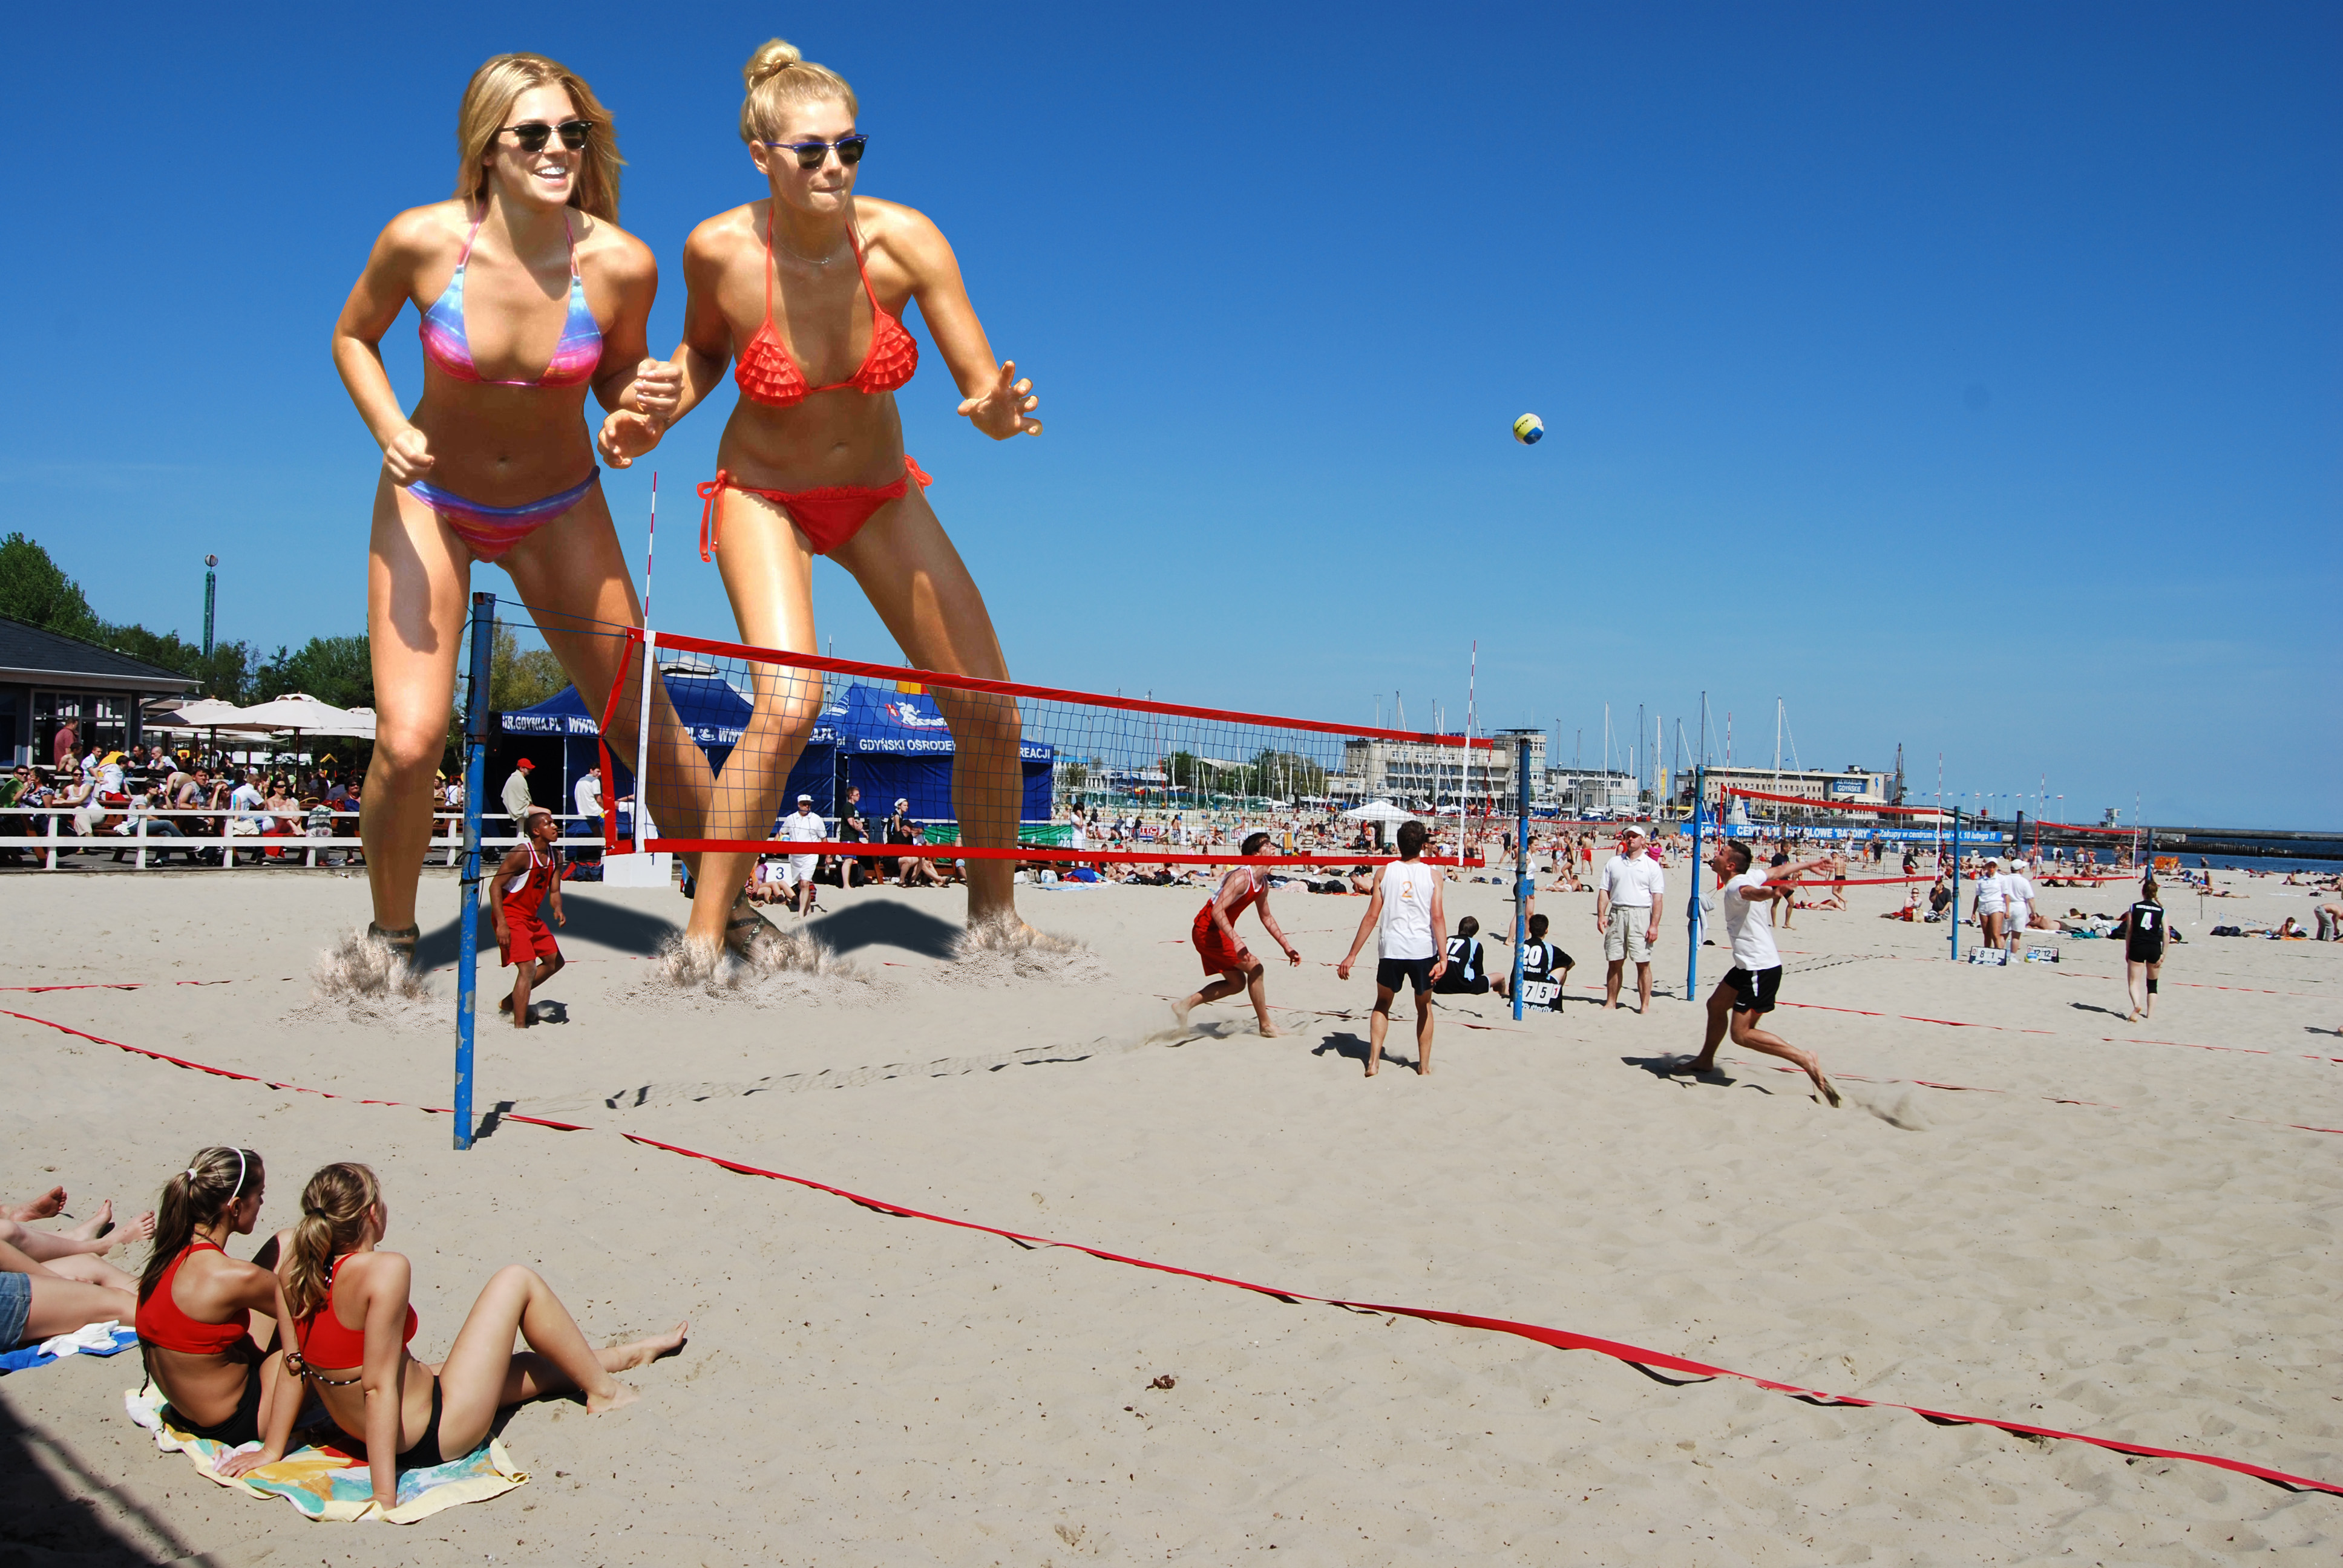 163788 - ashley_hart bikinis blonde collage giantess jessica_hart sand sky small_men sunglasses viewers volleyball wonderslug